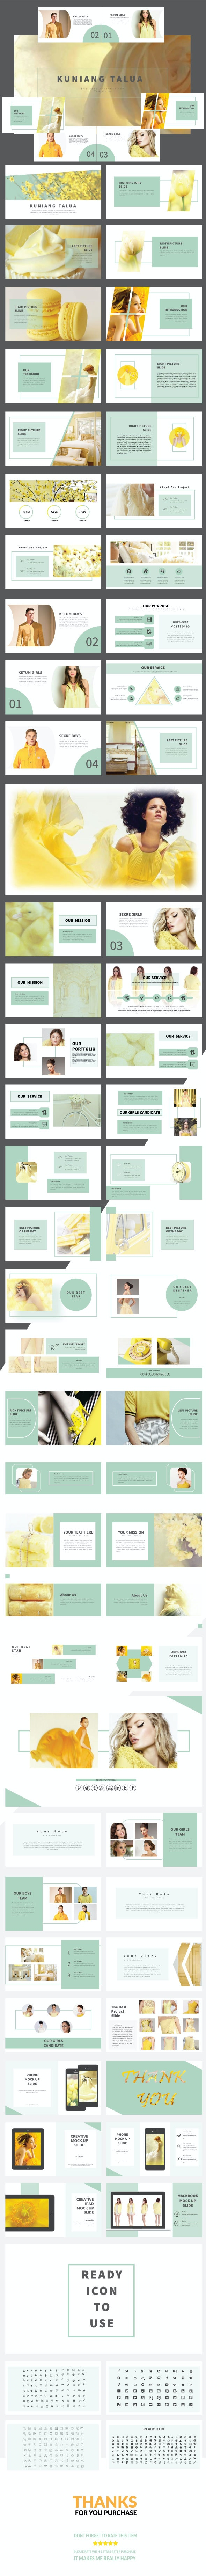 KUNIANG TALUA - Keynote template - Business Keynote Templates